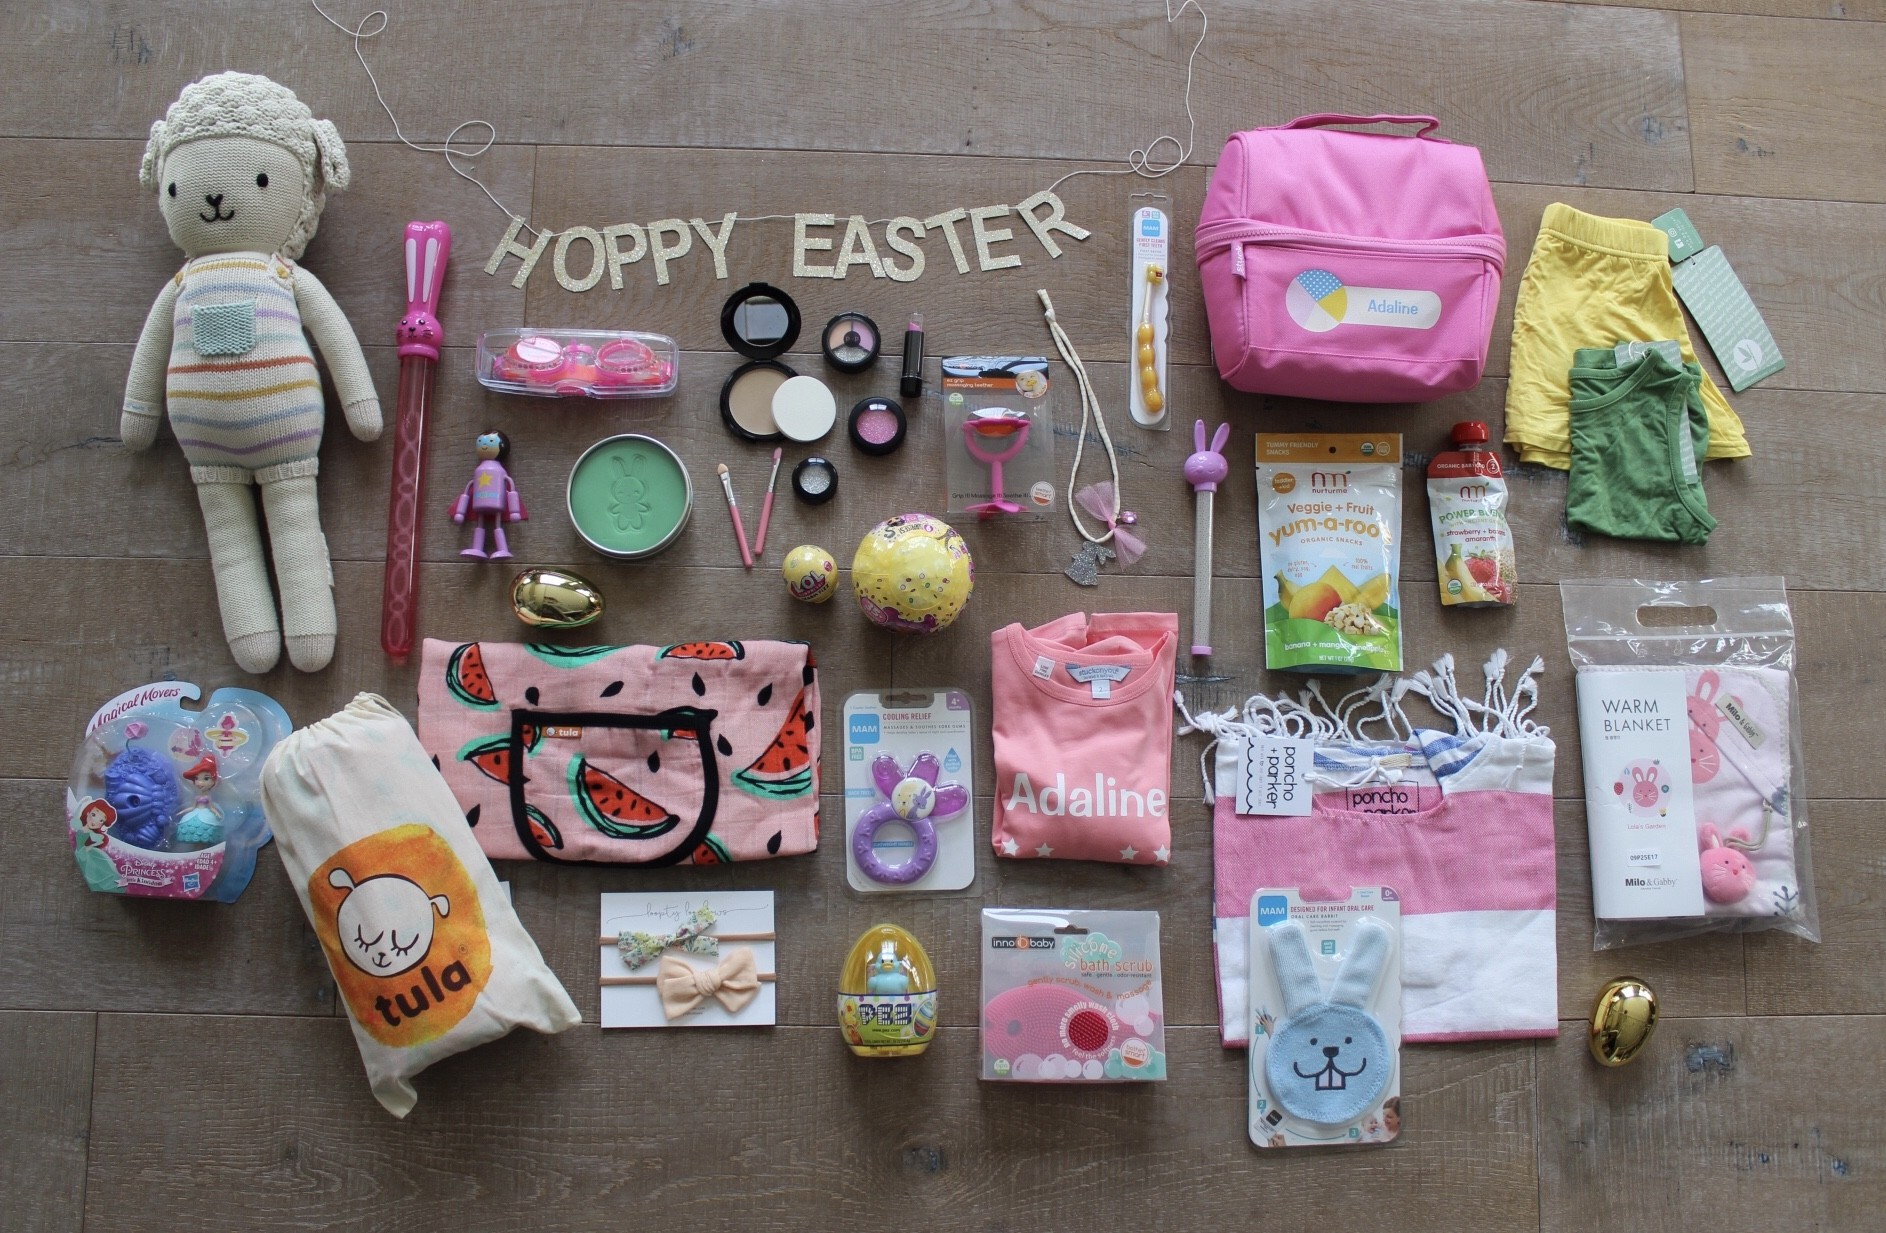 2018 easter gift guide hey its jenna whats in your kids easter baskets this year negle Image collections